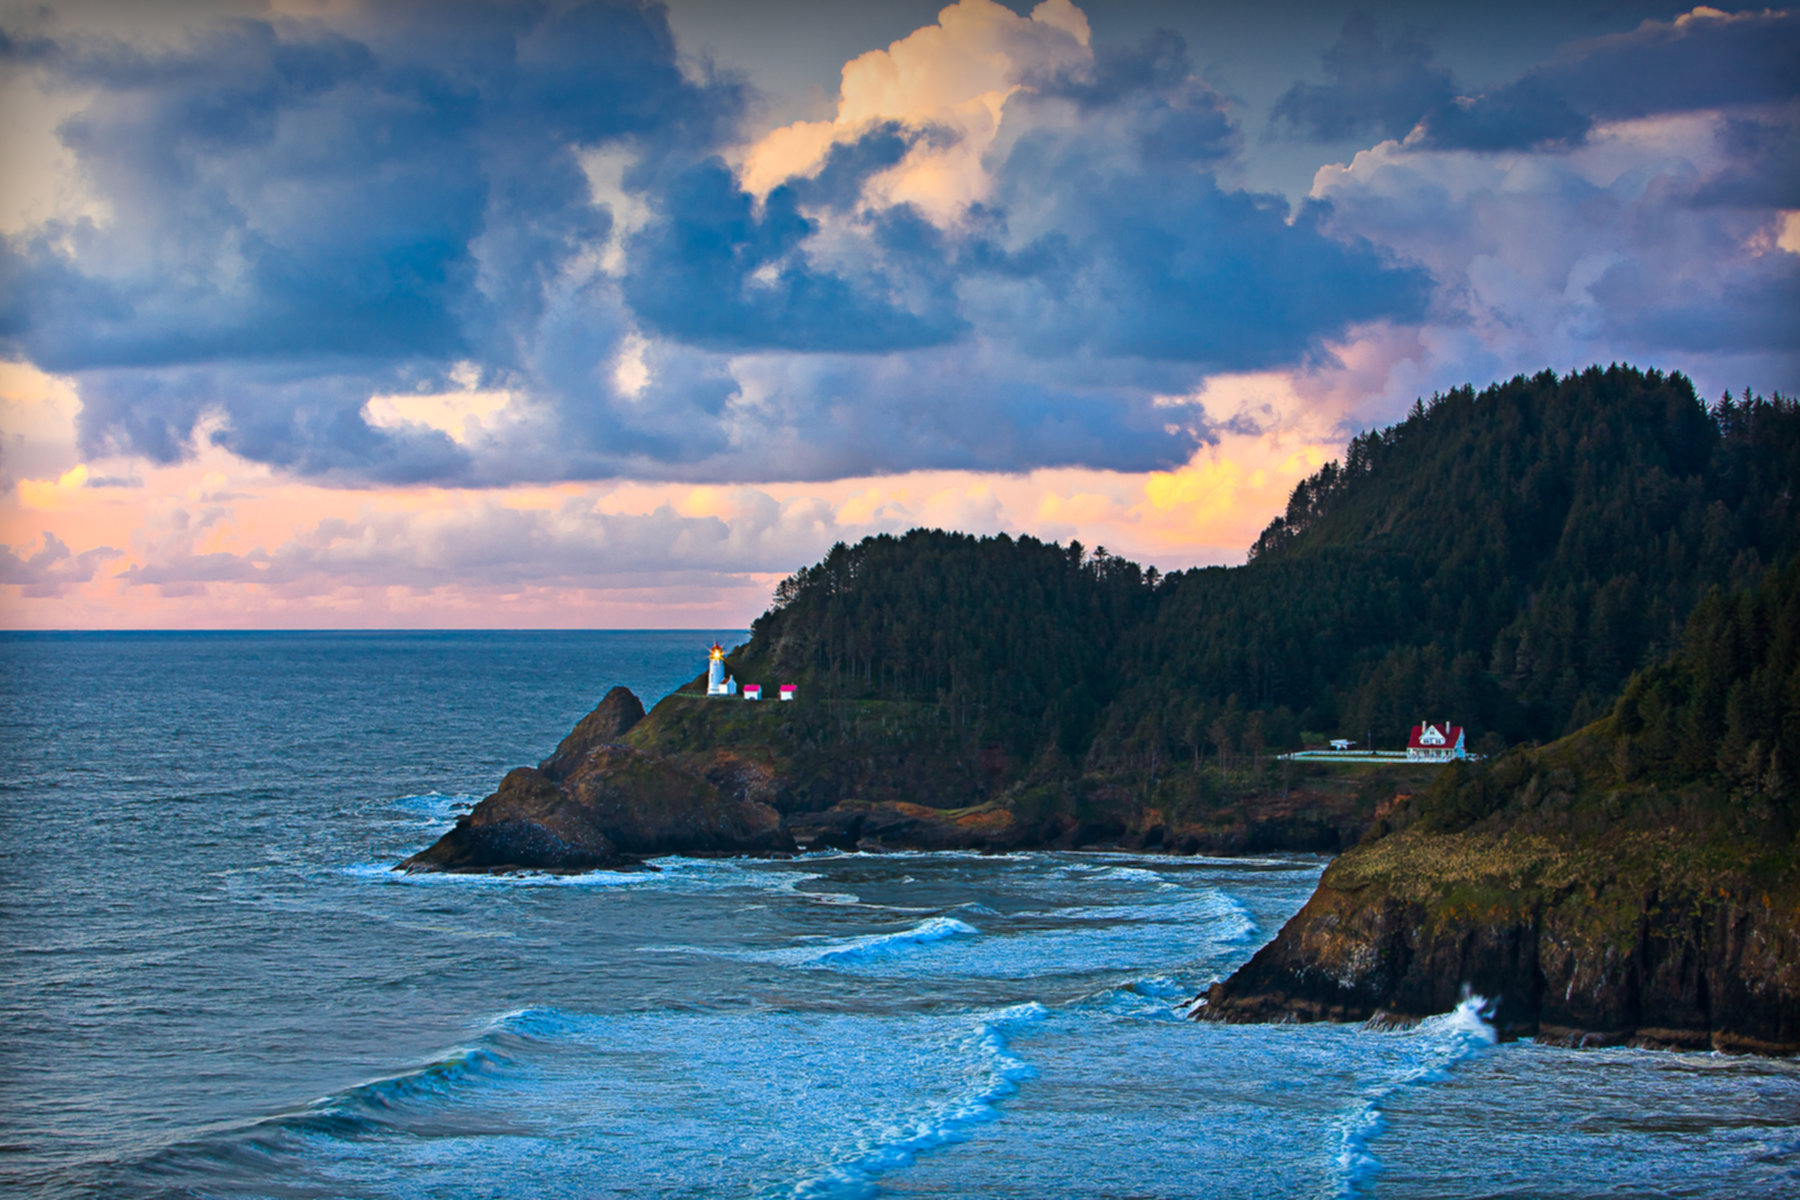 A body of water with a mountain in the background at Heceta Lighthouse B&B.